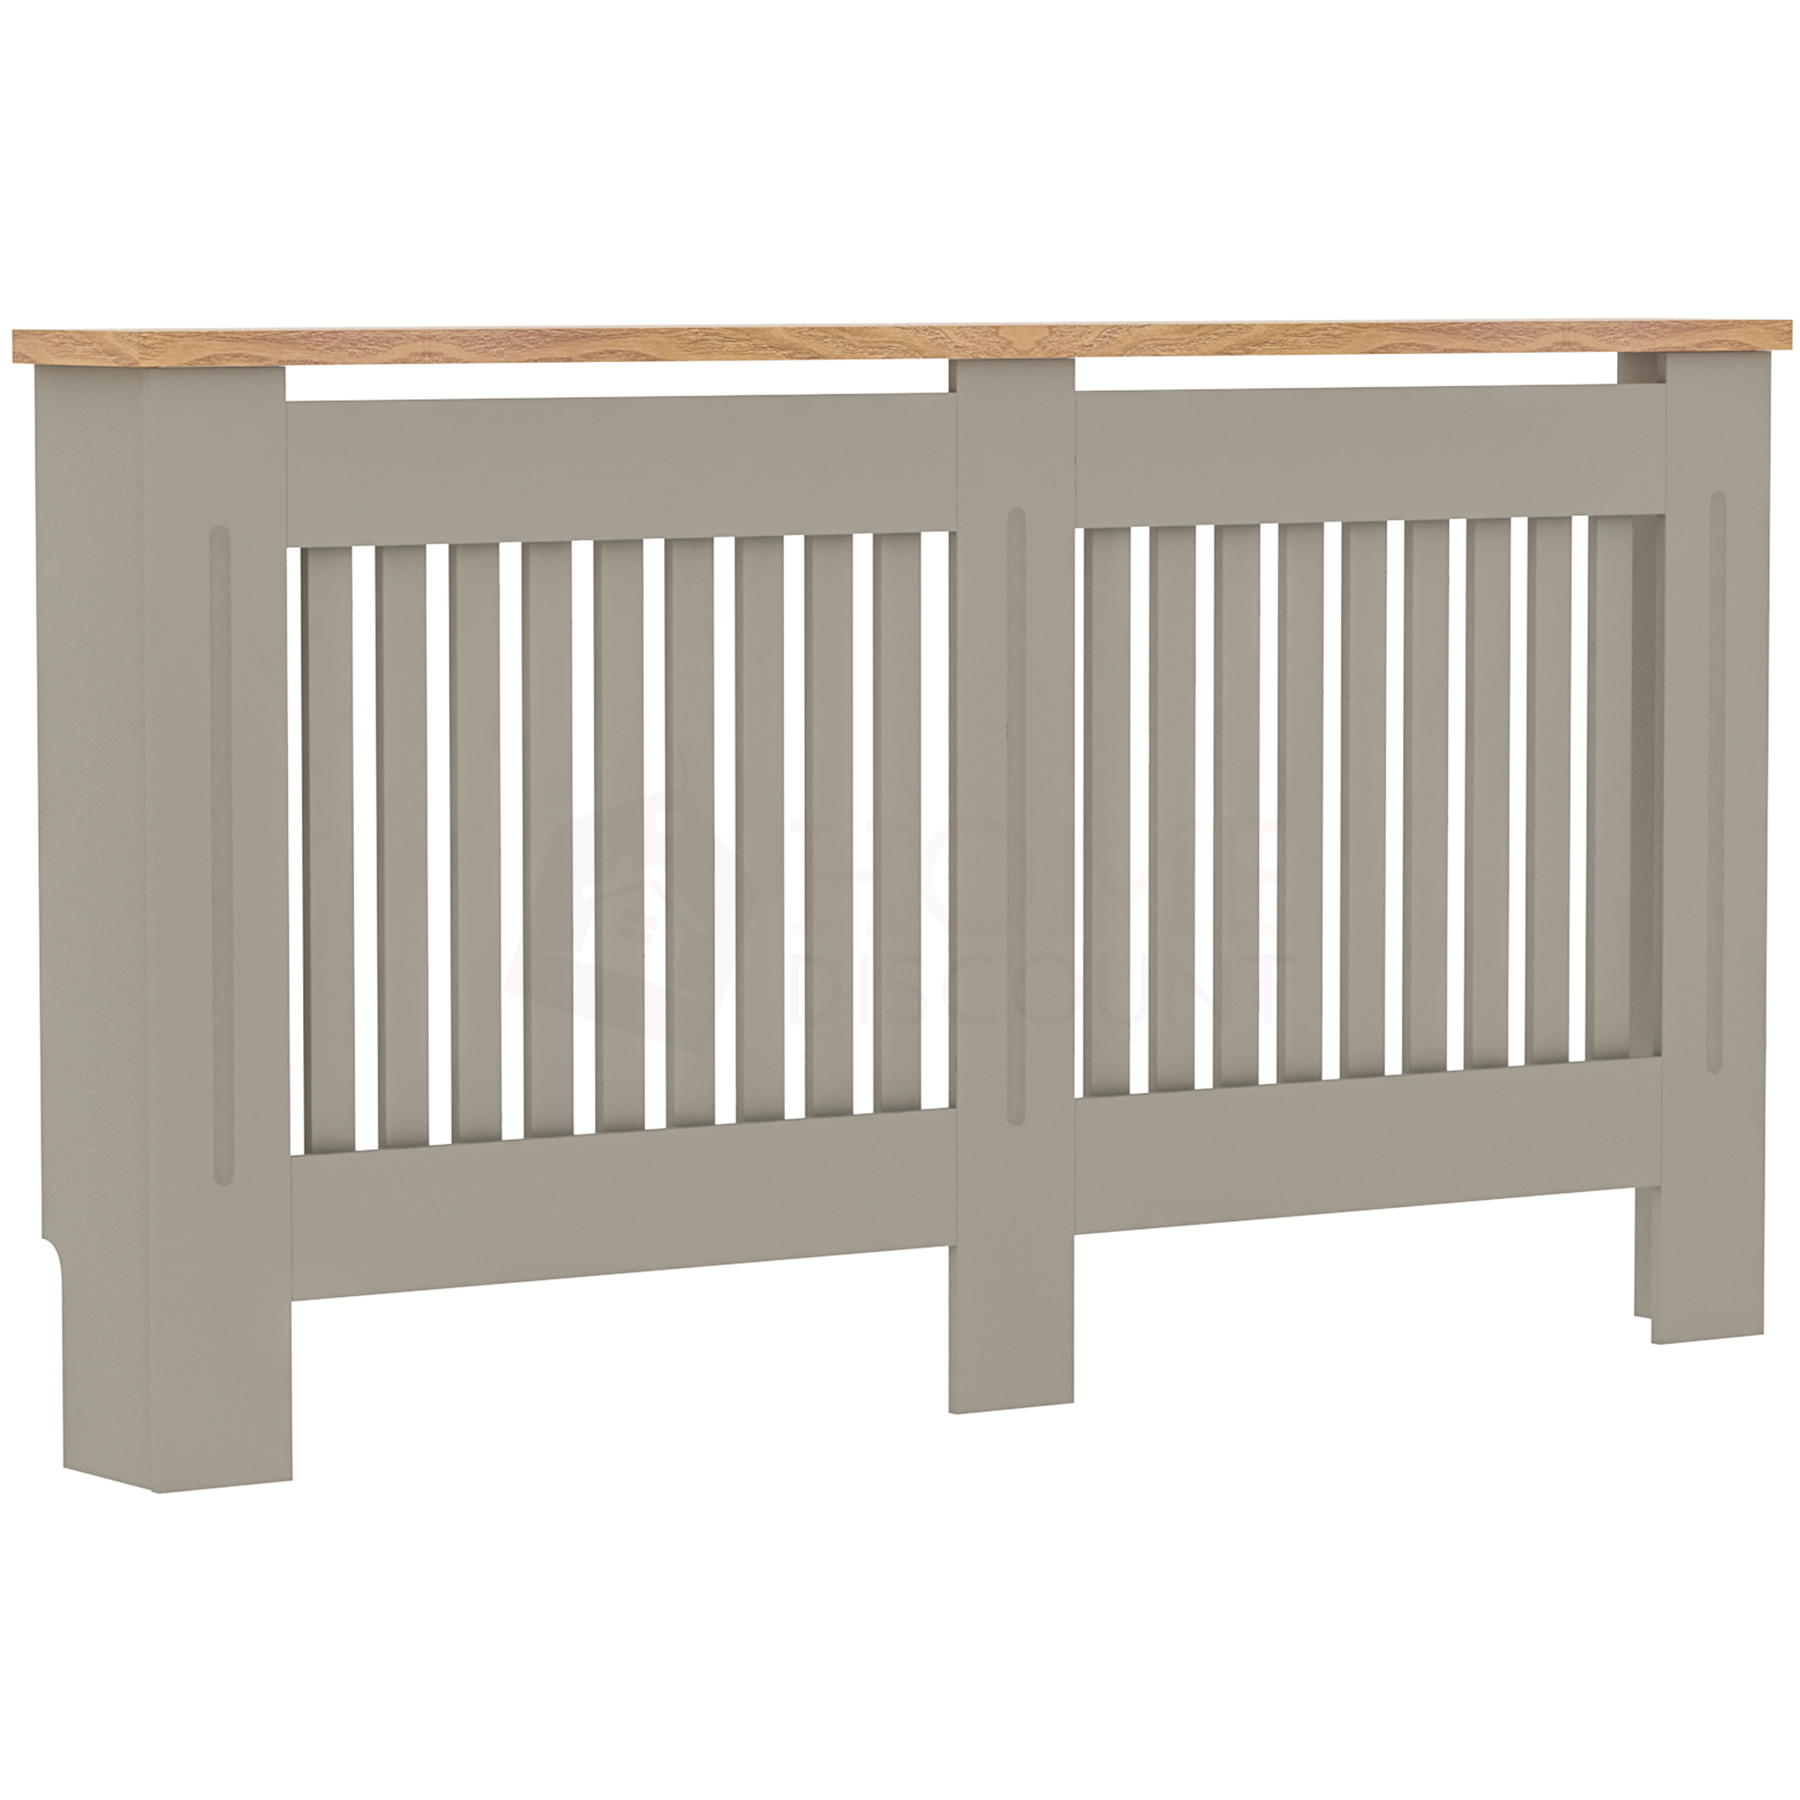 thumbnail 57 - Radiator Cover White Unfinished Modern Traditional Wood Grill Cabinet Furniture